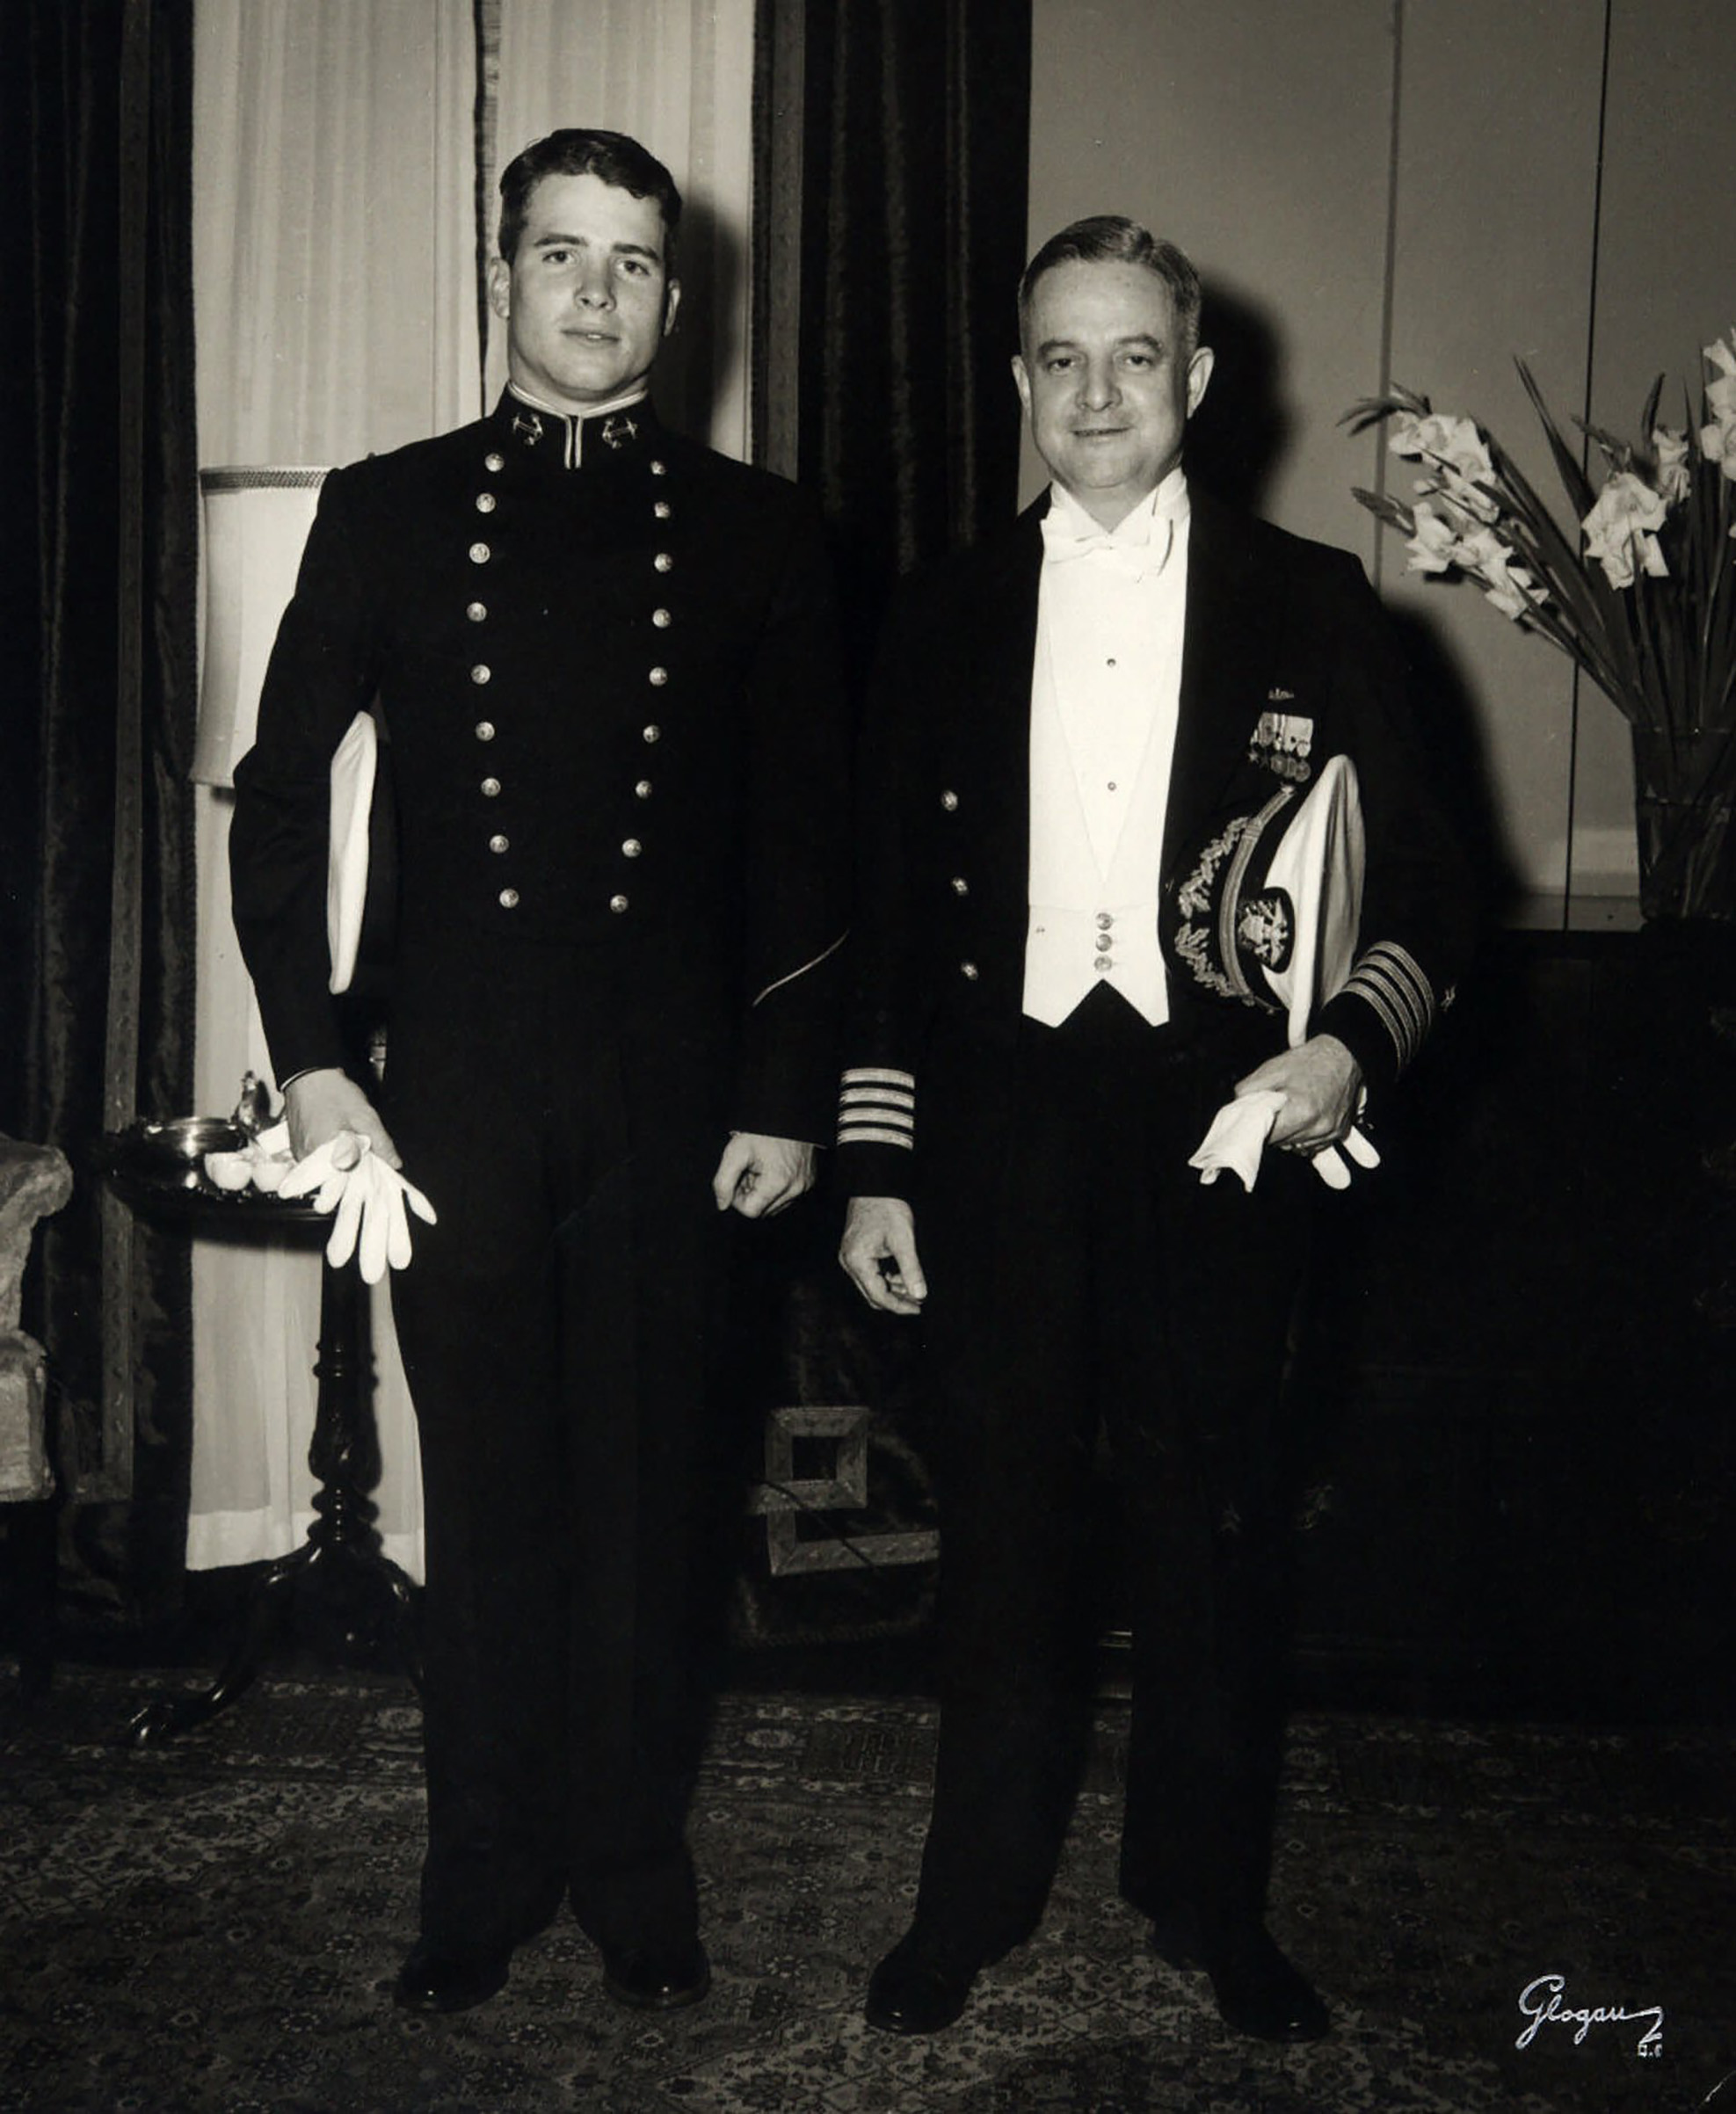 John McCain, left, stands in military dress uniform next to his father, John S. McCain, Jr., in this undated photo.